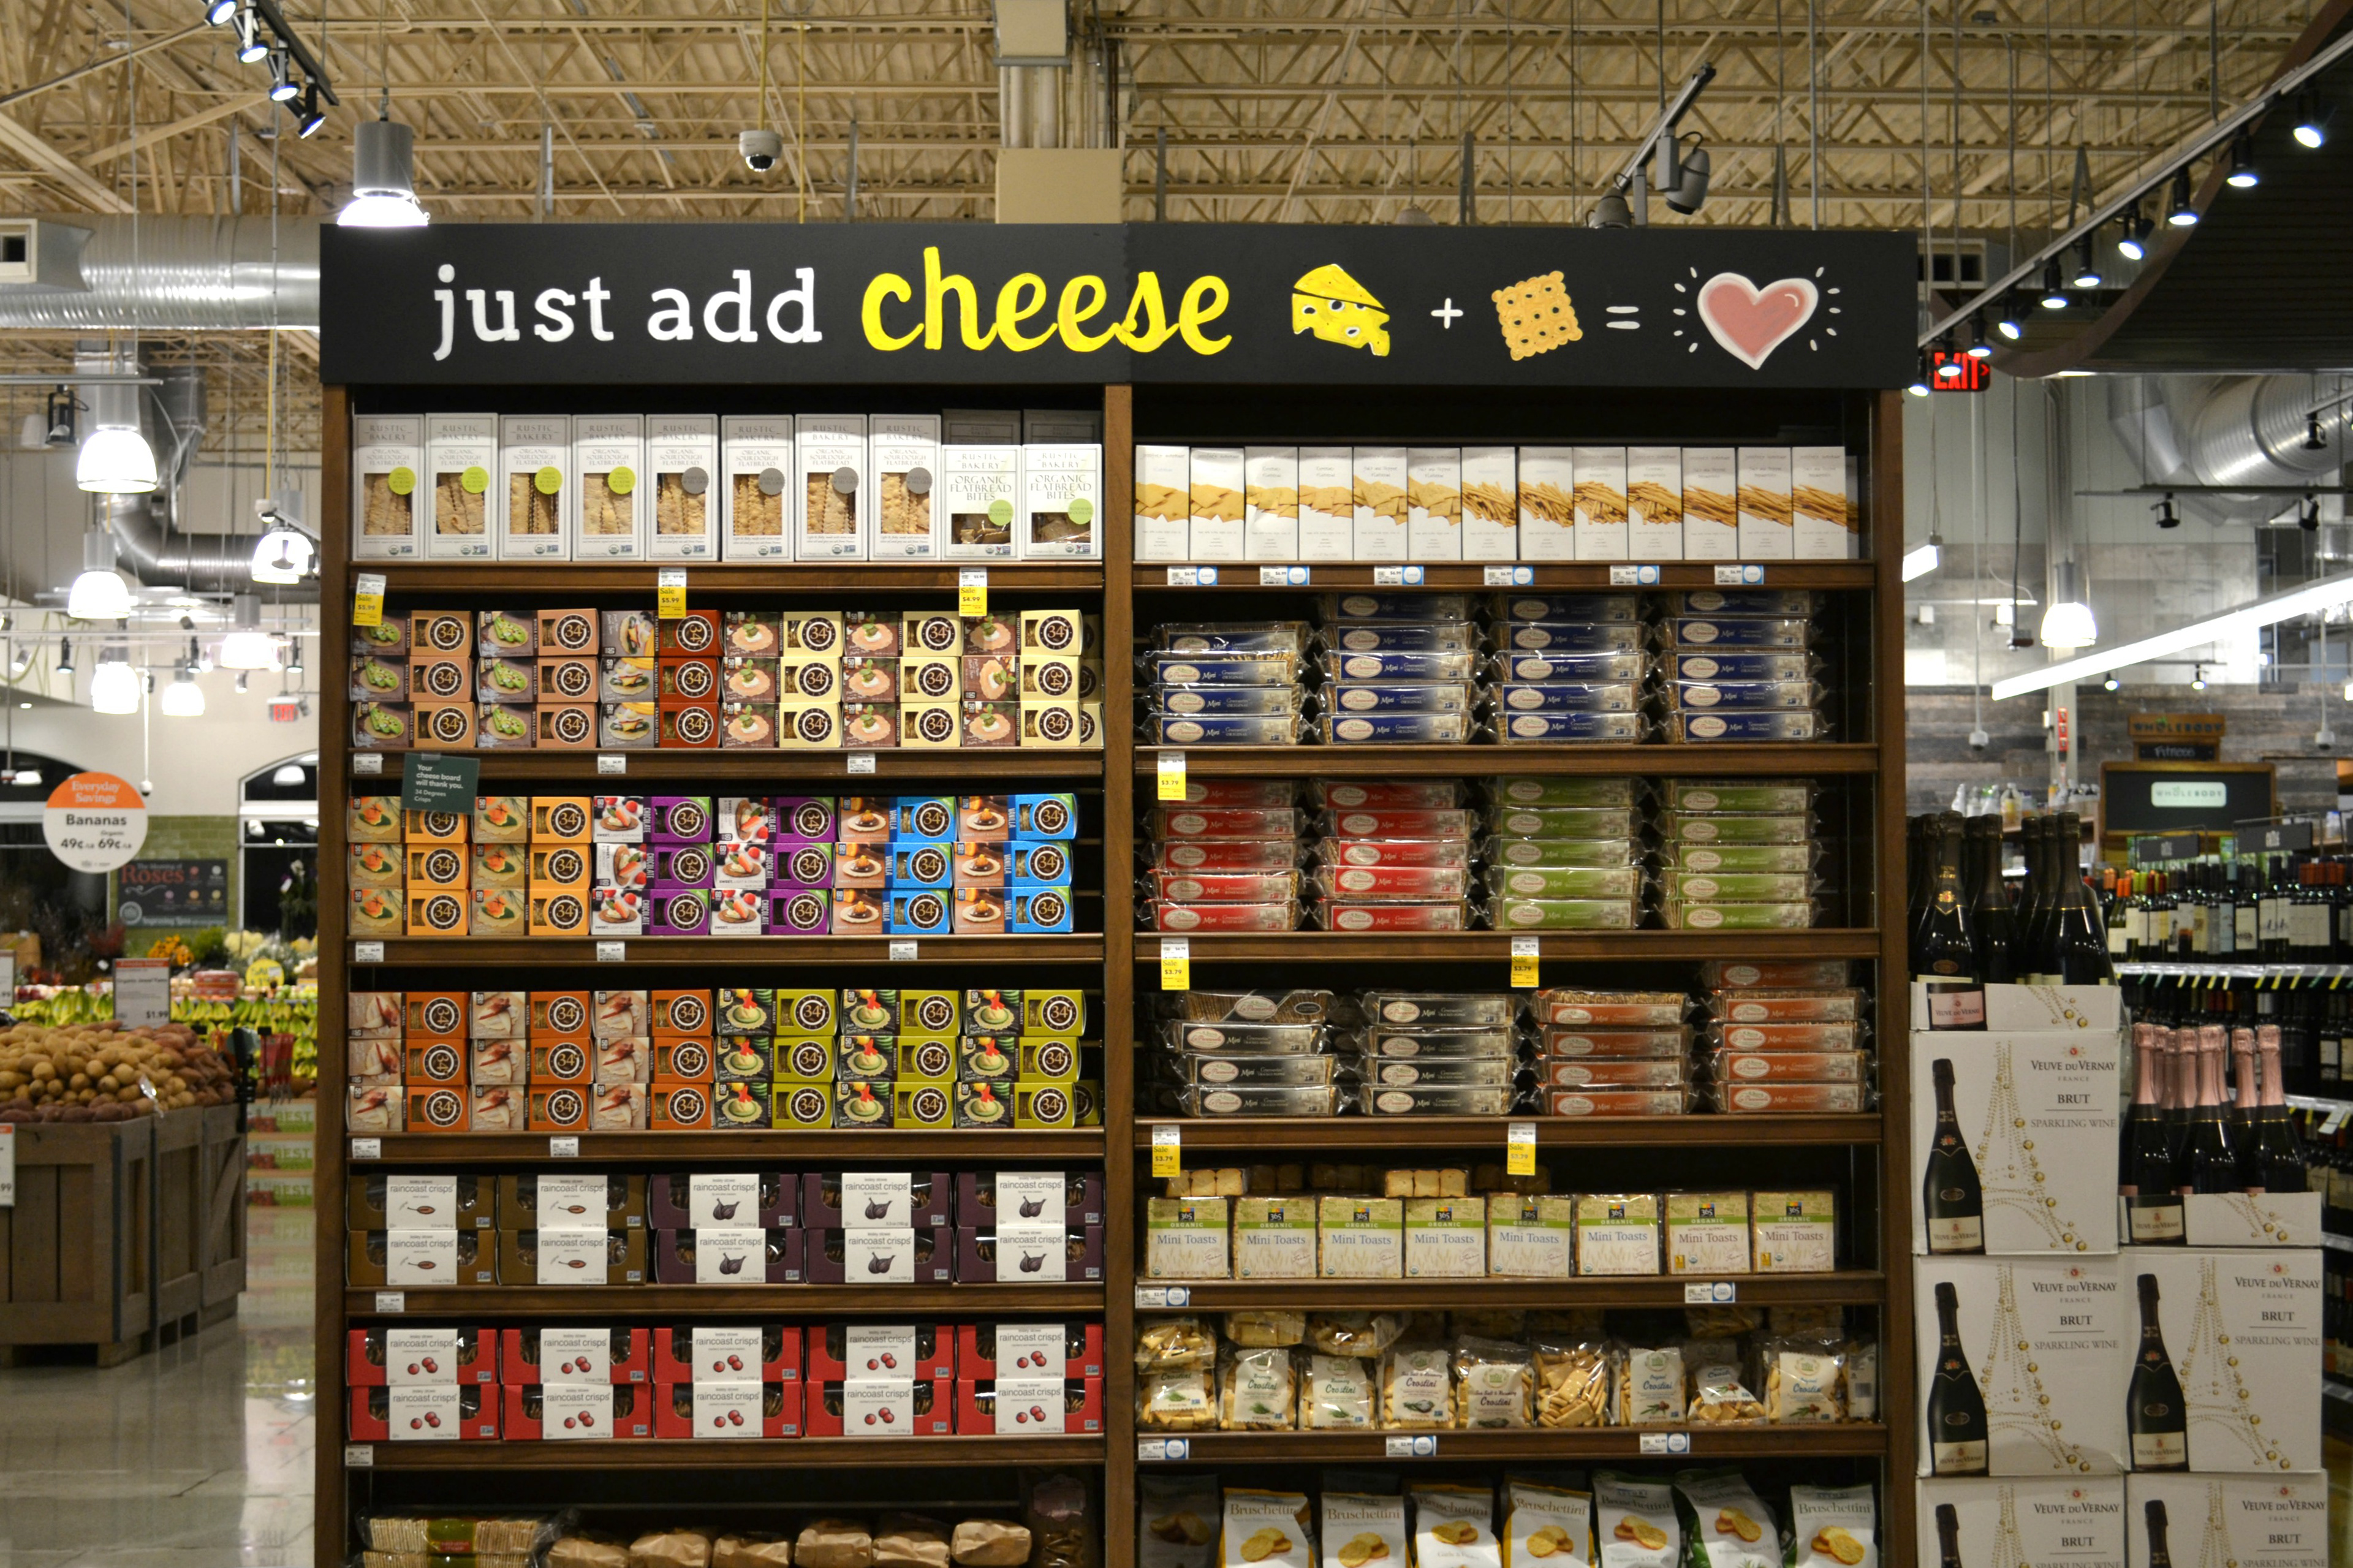 amanda pagán whole foods market just add cheese display header